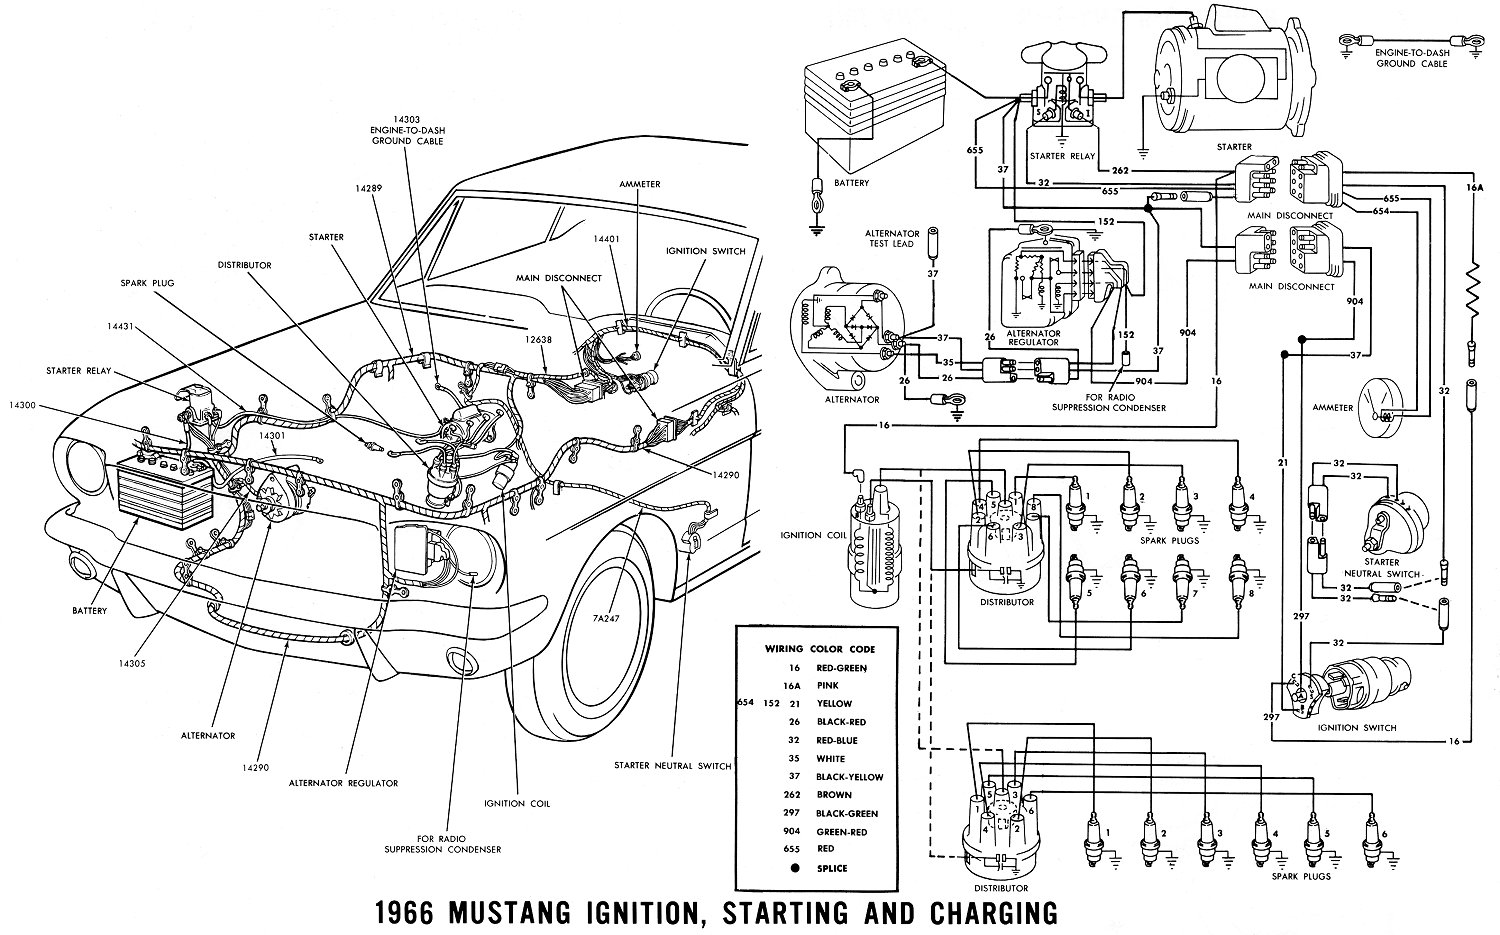 66ignit vintage mustang wiring diagrams 1970 mustang wiring diagram download at n-0.co